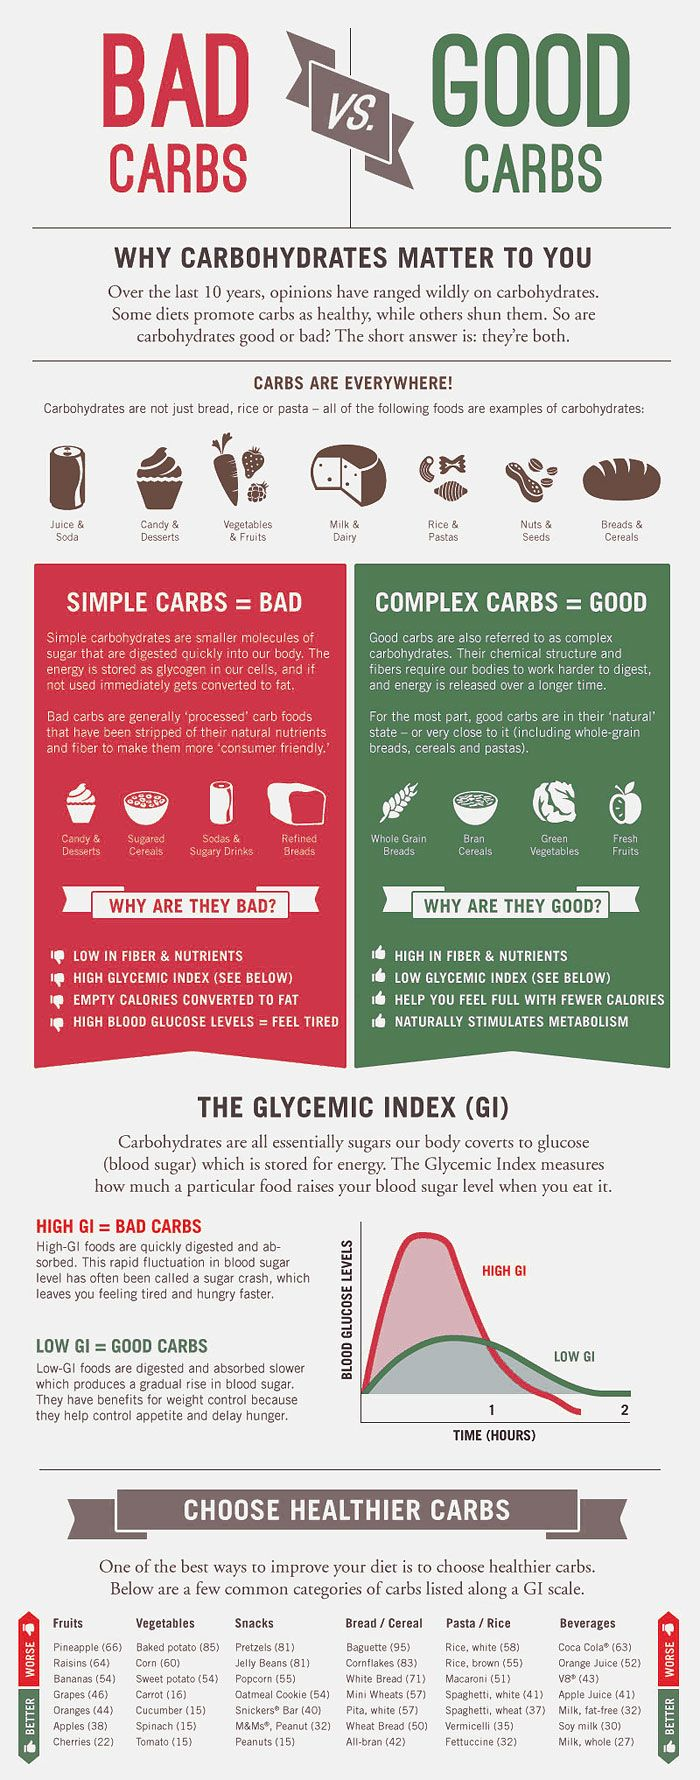 Drop the simple carbs and add the complex carbs to keep your blood sugar under control